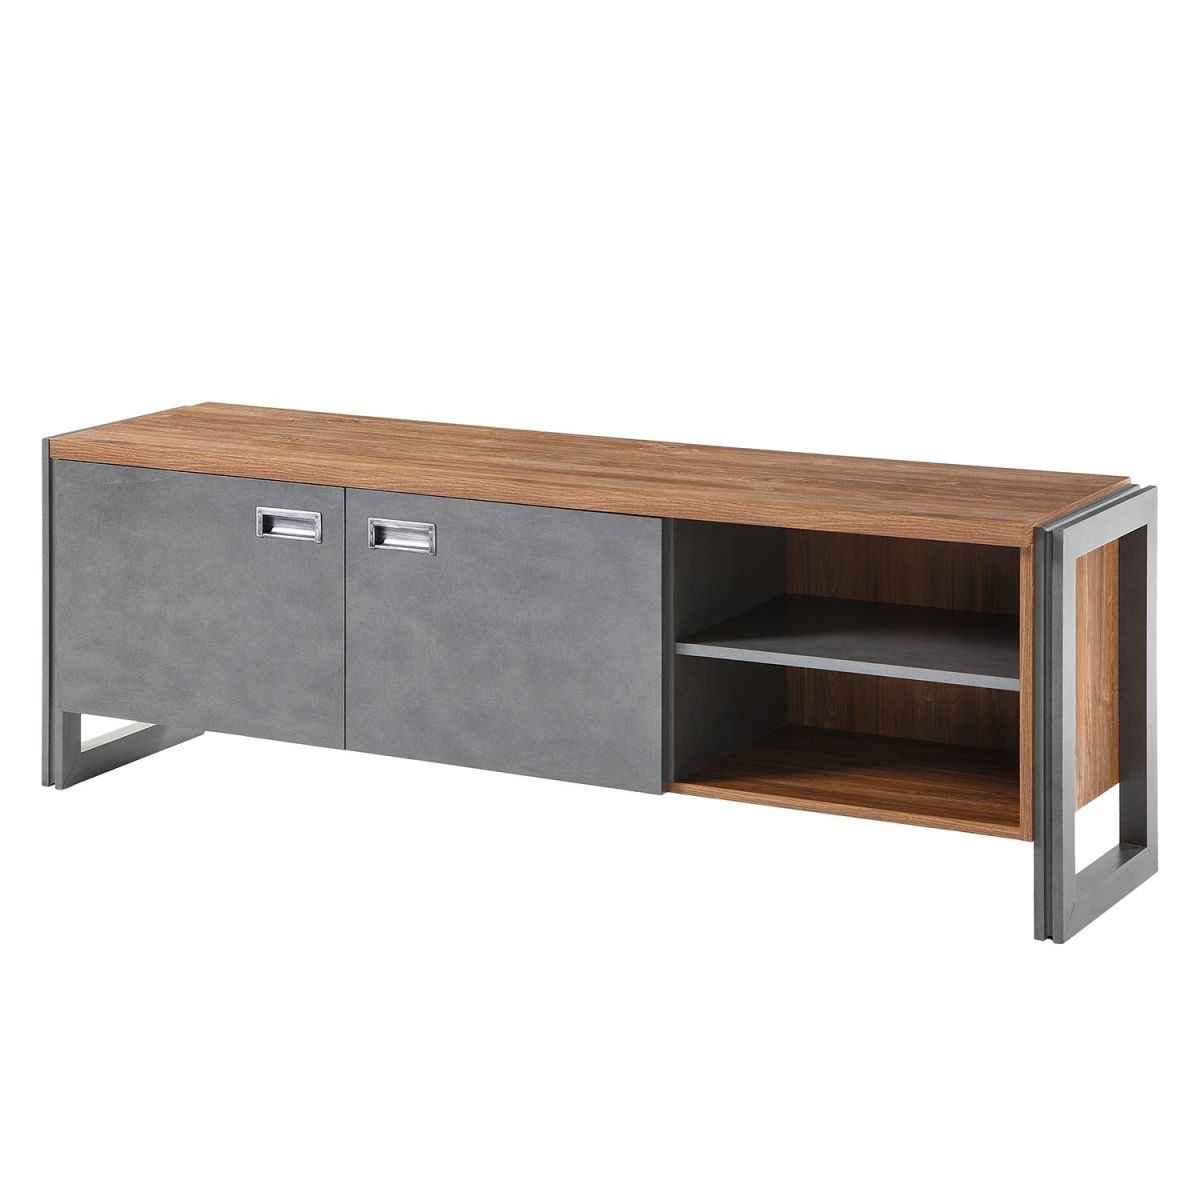 Tv mbel eiche hell excellent tv mbel eiche hell wunderbar eckschrank tv with tv mbel eiche hell - Ars manufacti mobel ...